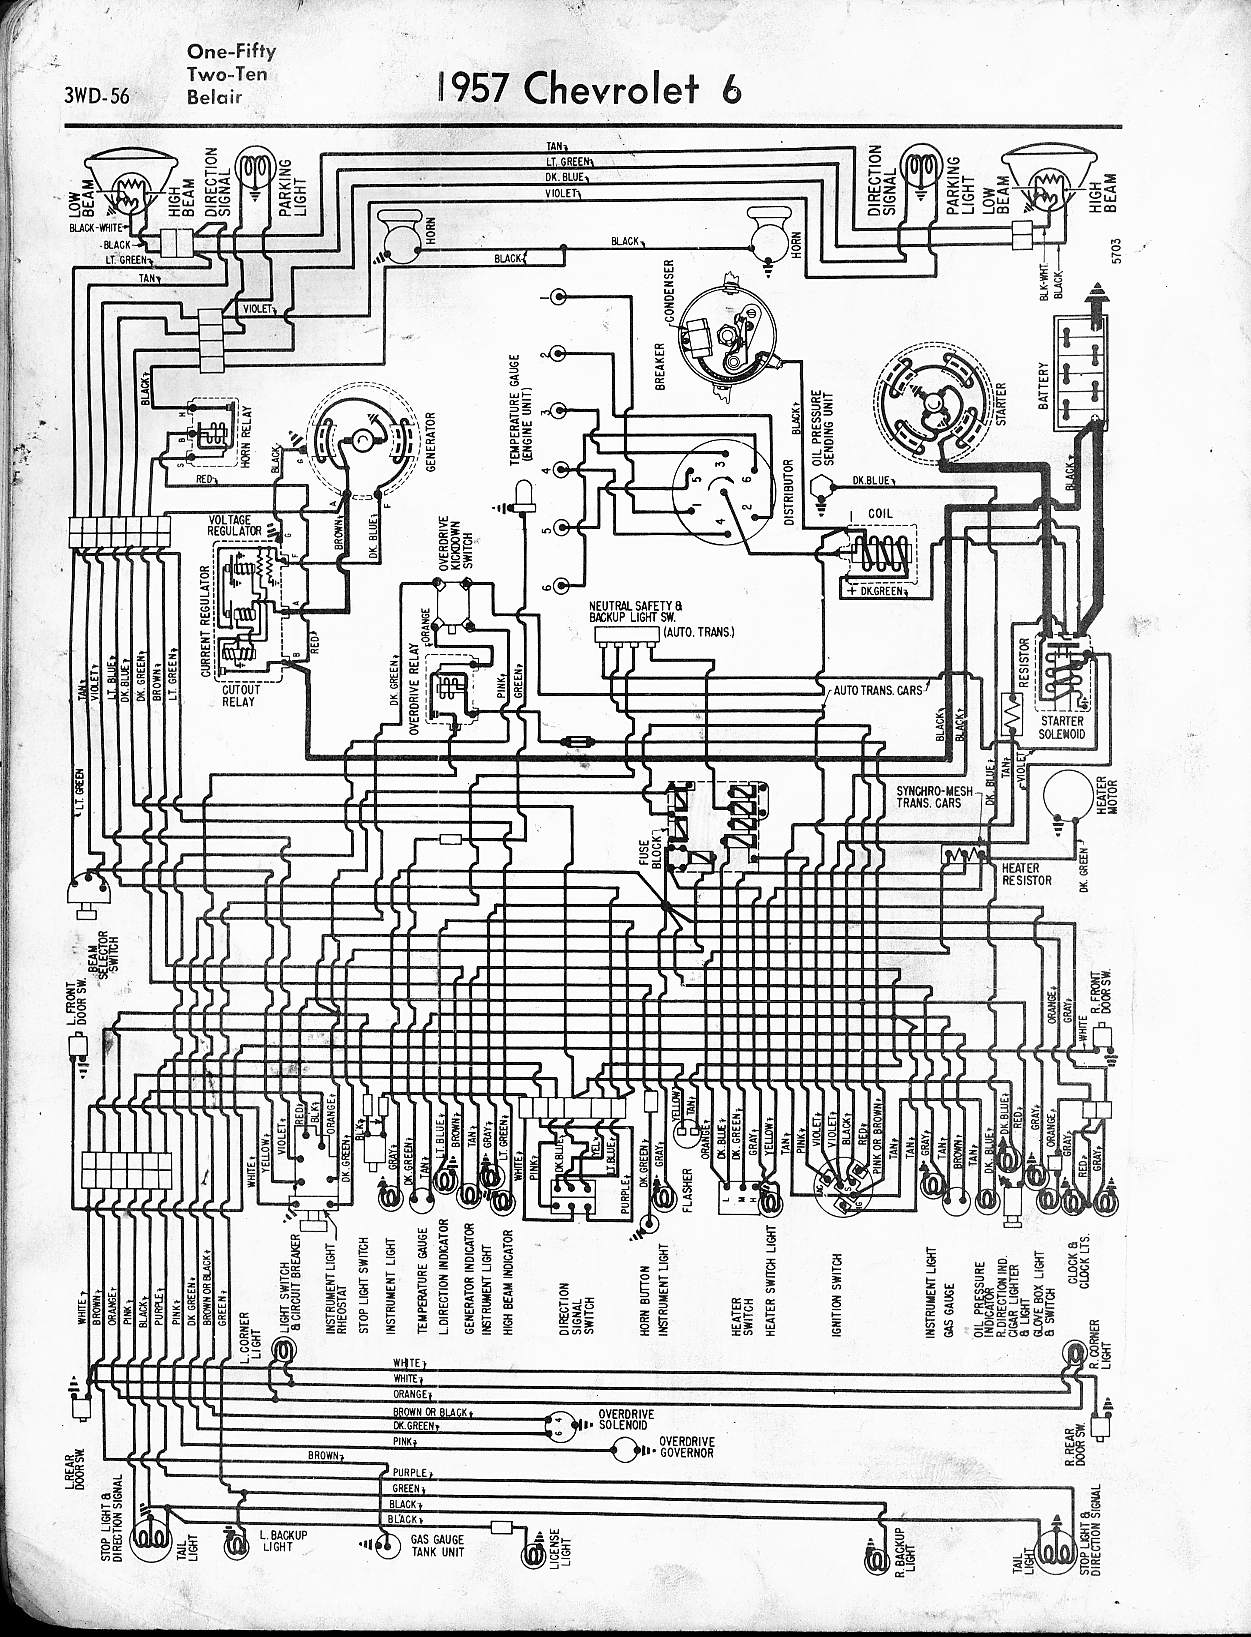 1957 Chevy Pickup Wiring Harness Diagram Data Additionally Car Horn On Wire 56 For Library 1954